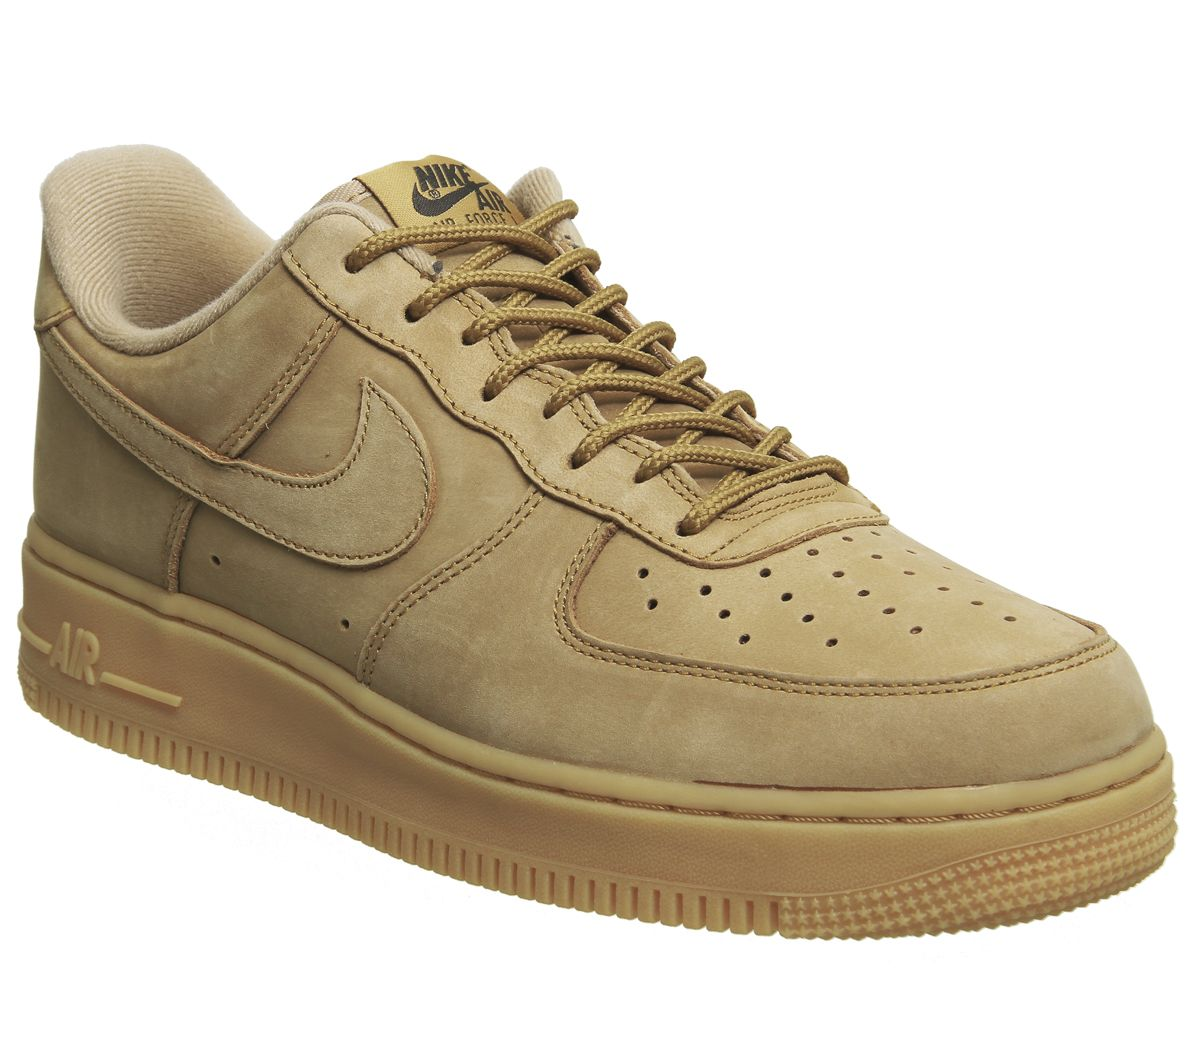 check out b2b5a 5fad6 Nike Air Force 1 Lv8 Trainers Flax Suede Gum - His trainers